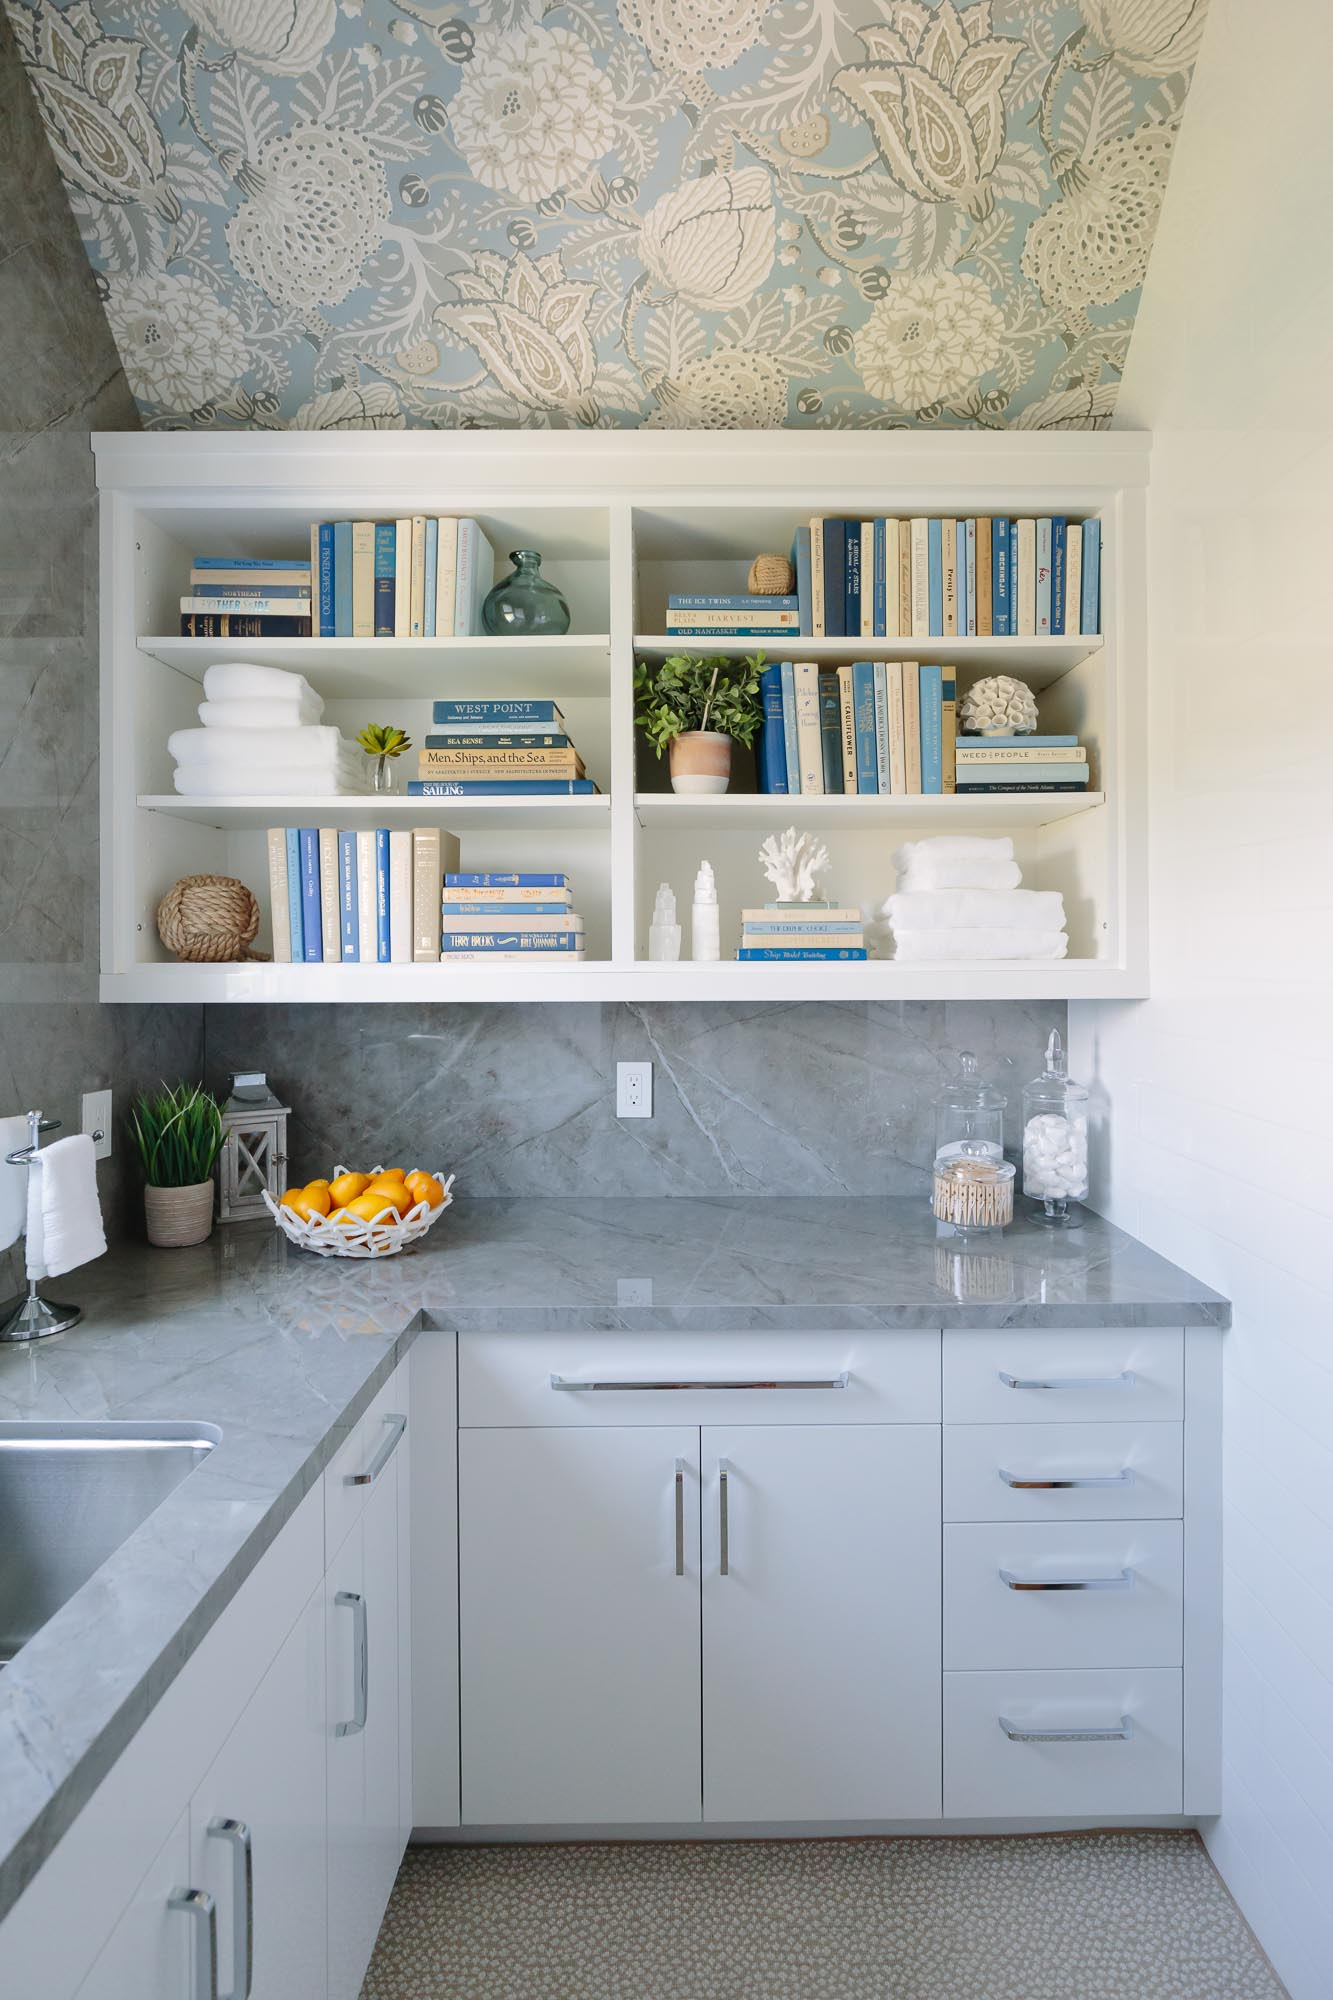 2019 Hampton Designer Showhouse featured by top US style blog, York Avenue: image of Courtney Sempliner Designs Hampton Designer Showhouse 2019 laundry room